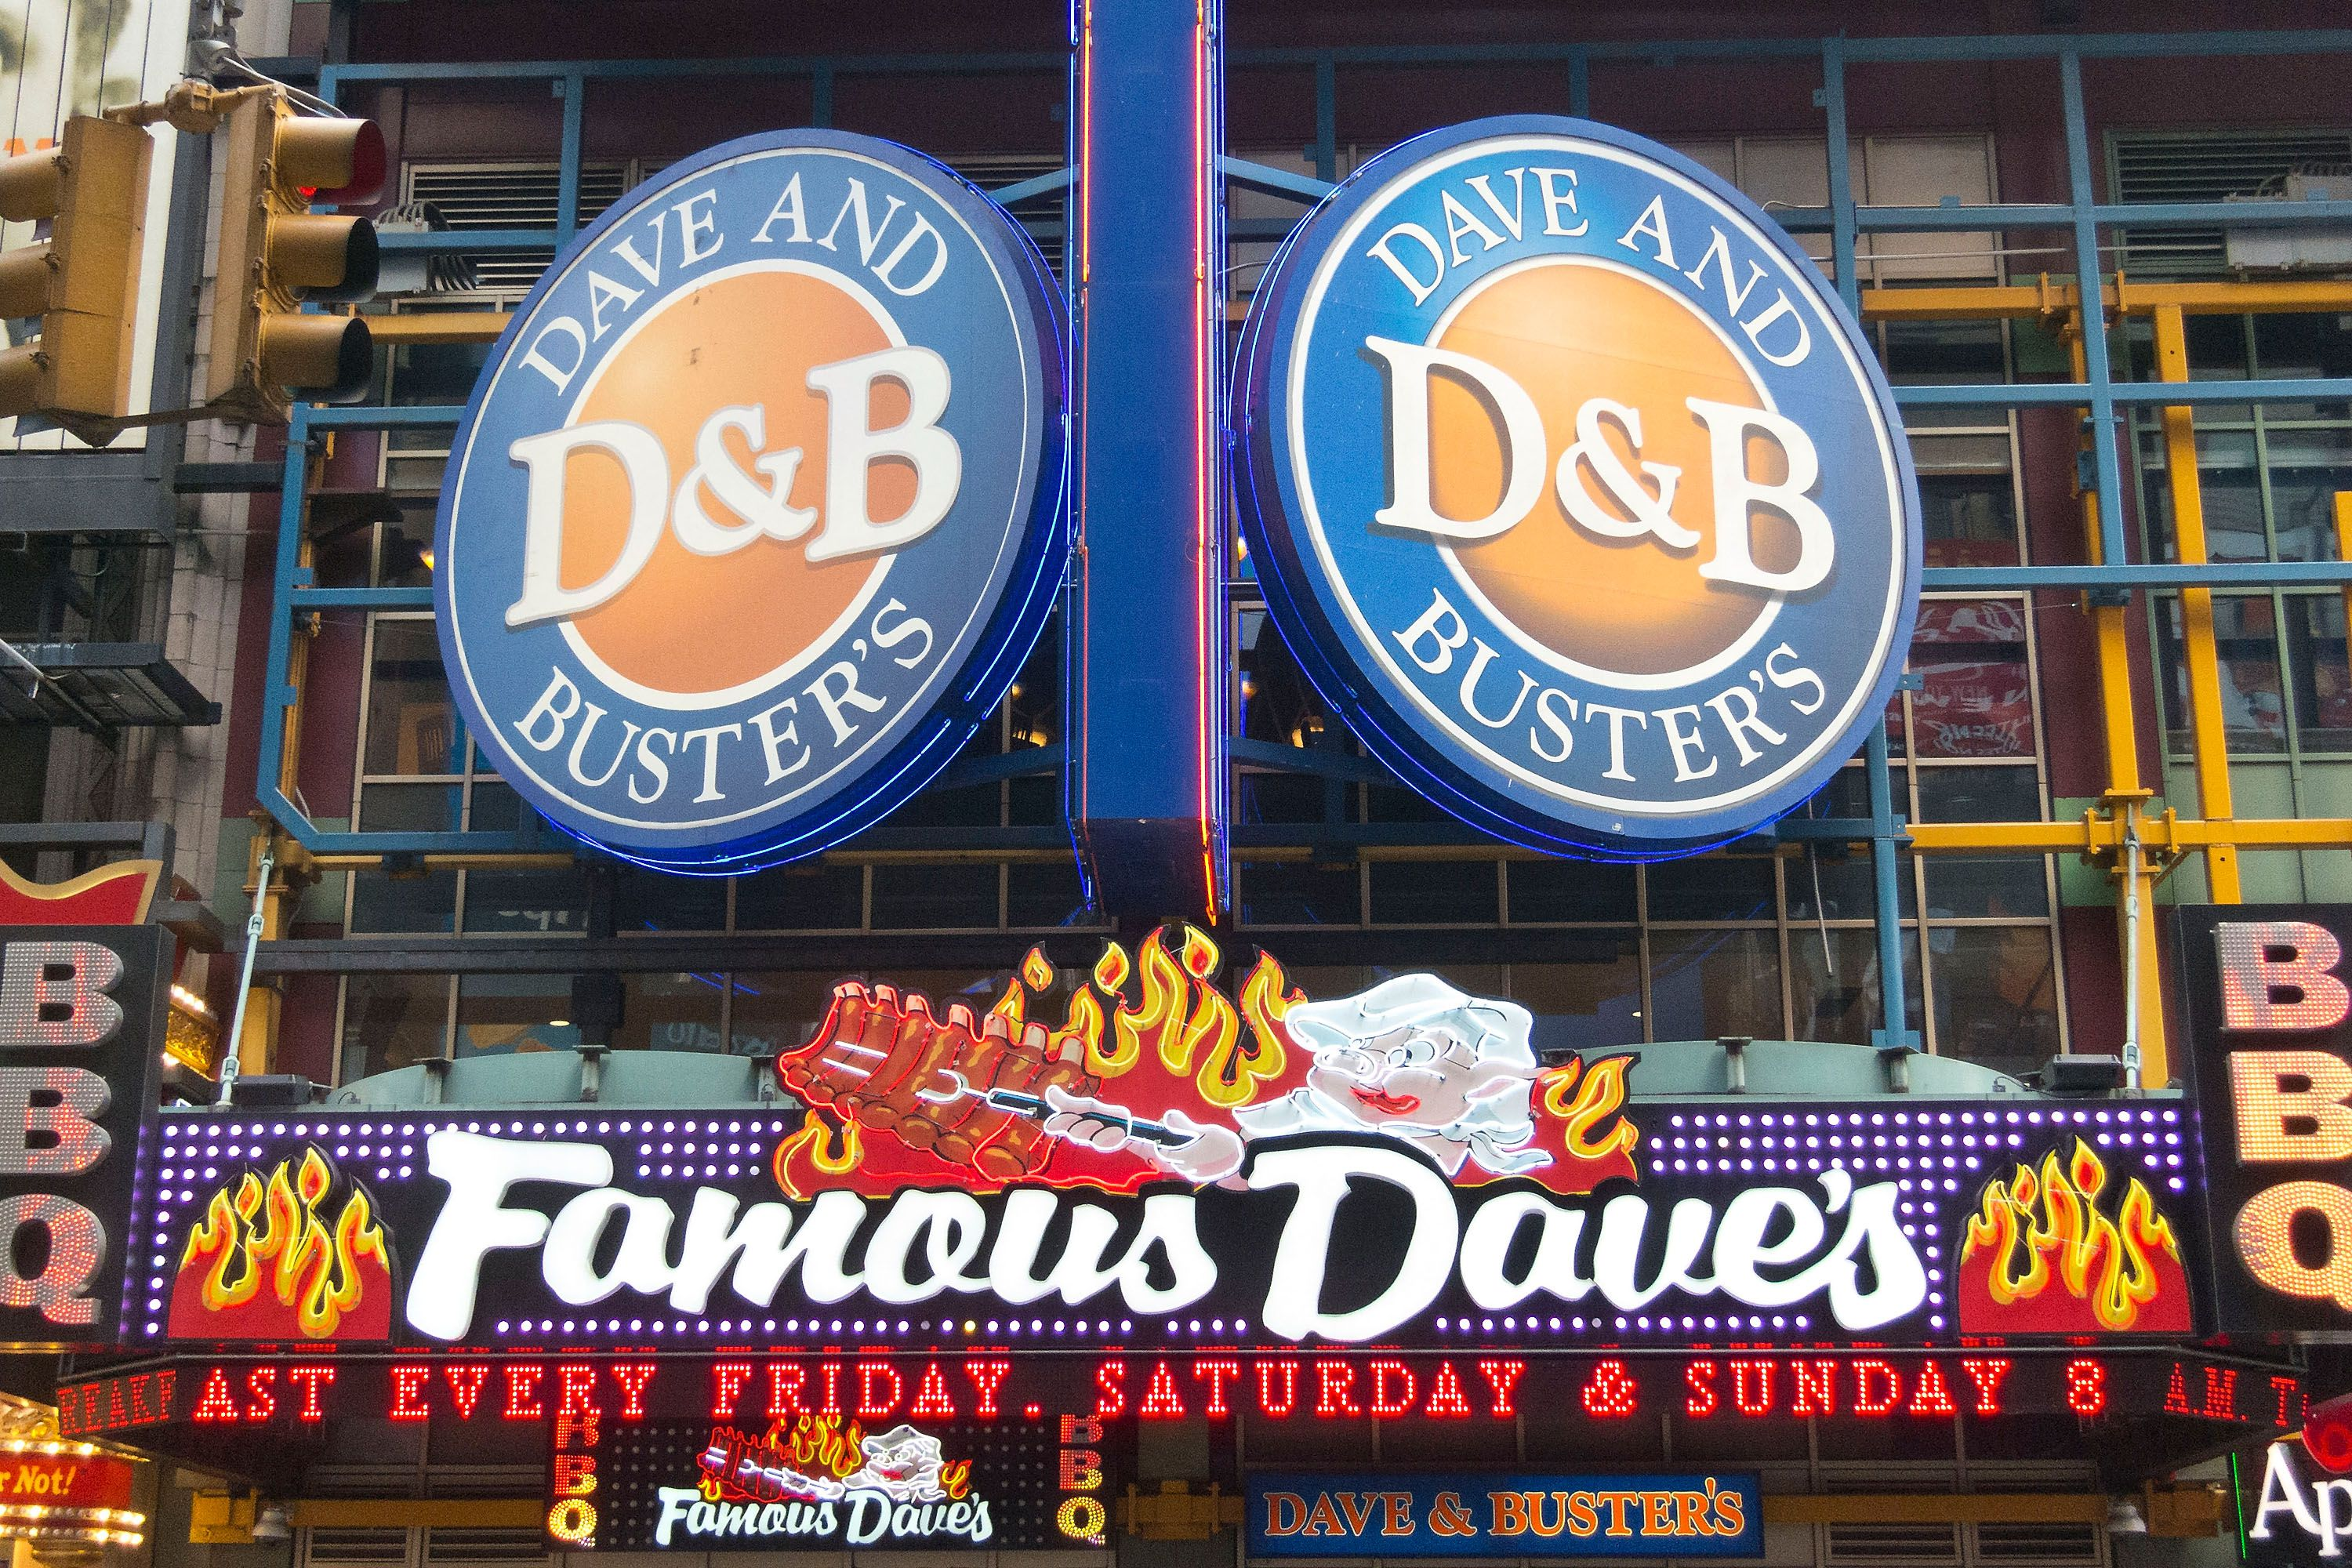 KKR's Dave & Buster's play may signal new private equity path